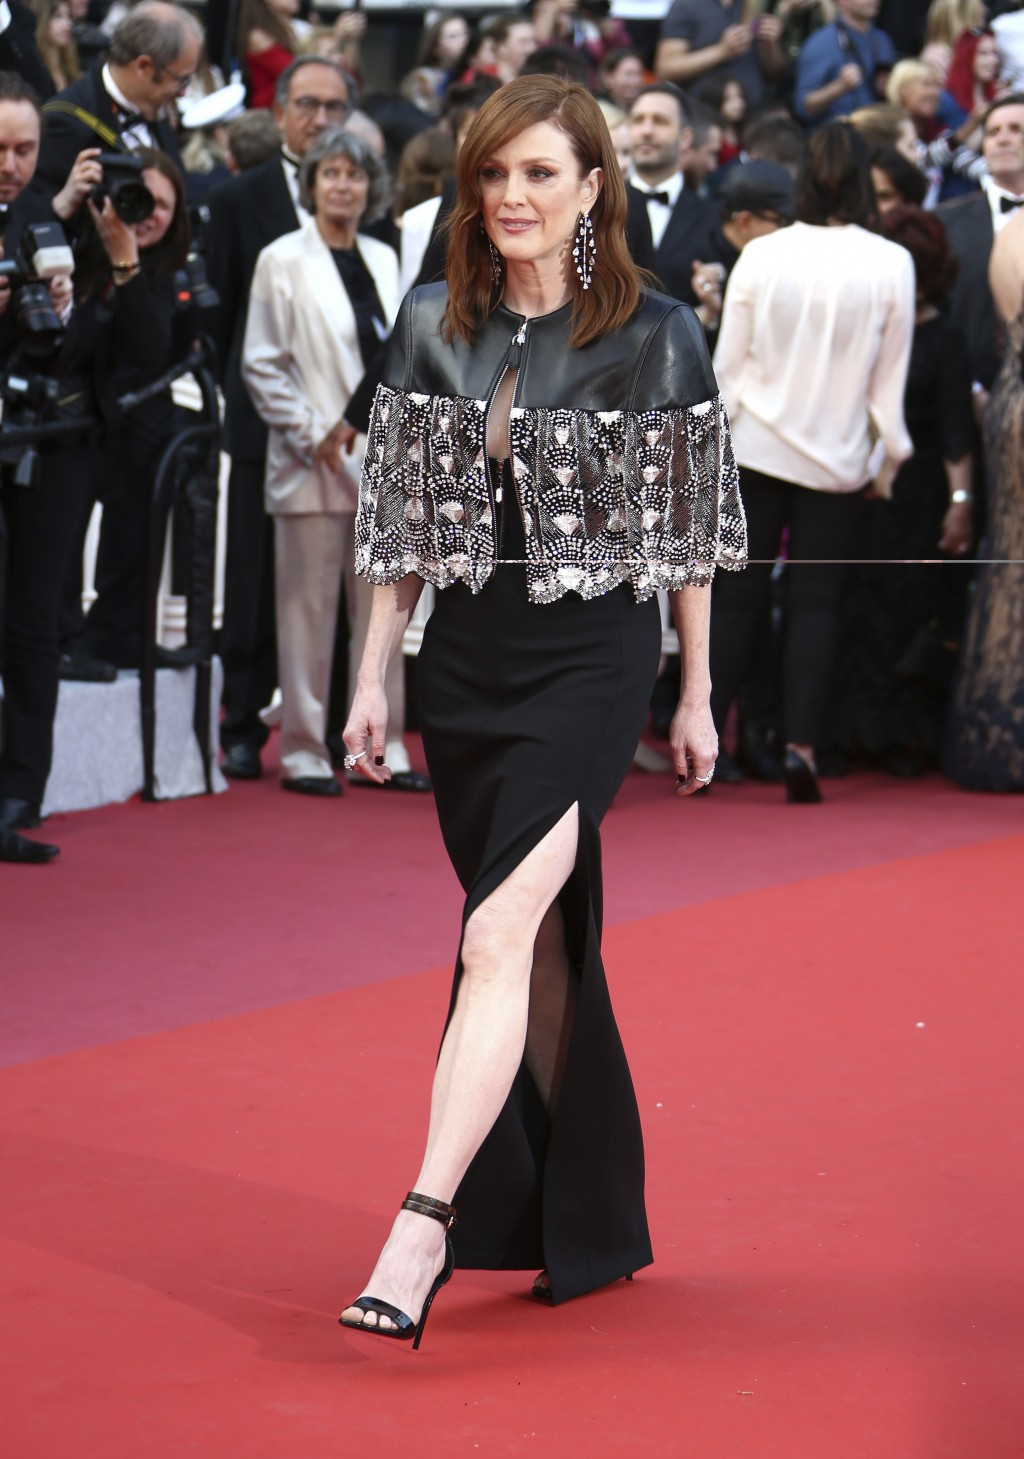 Julianne Moore poses for photographers upon arrival at the premiere of the film 'Les Miserables' at the 72nd international film festival, Cannes, sout